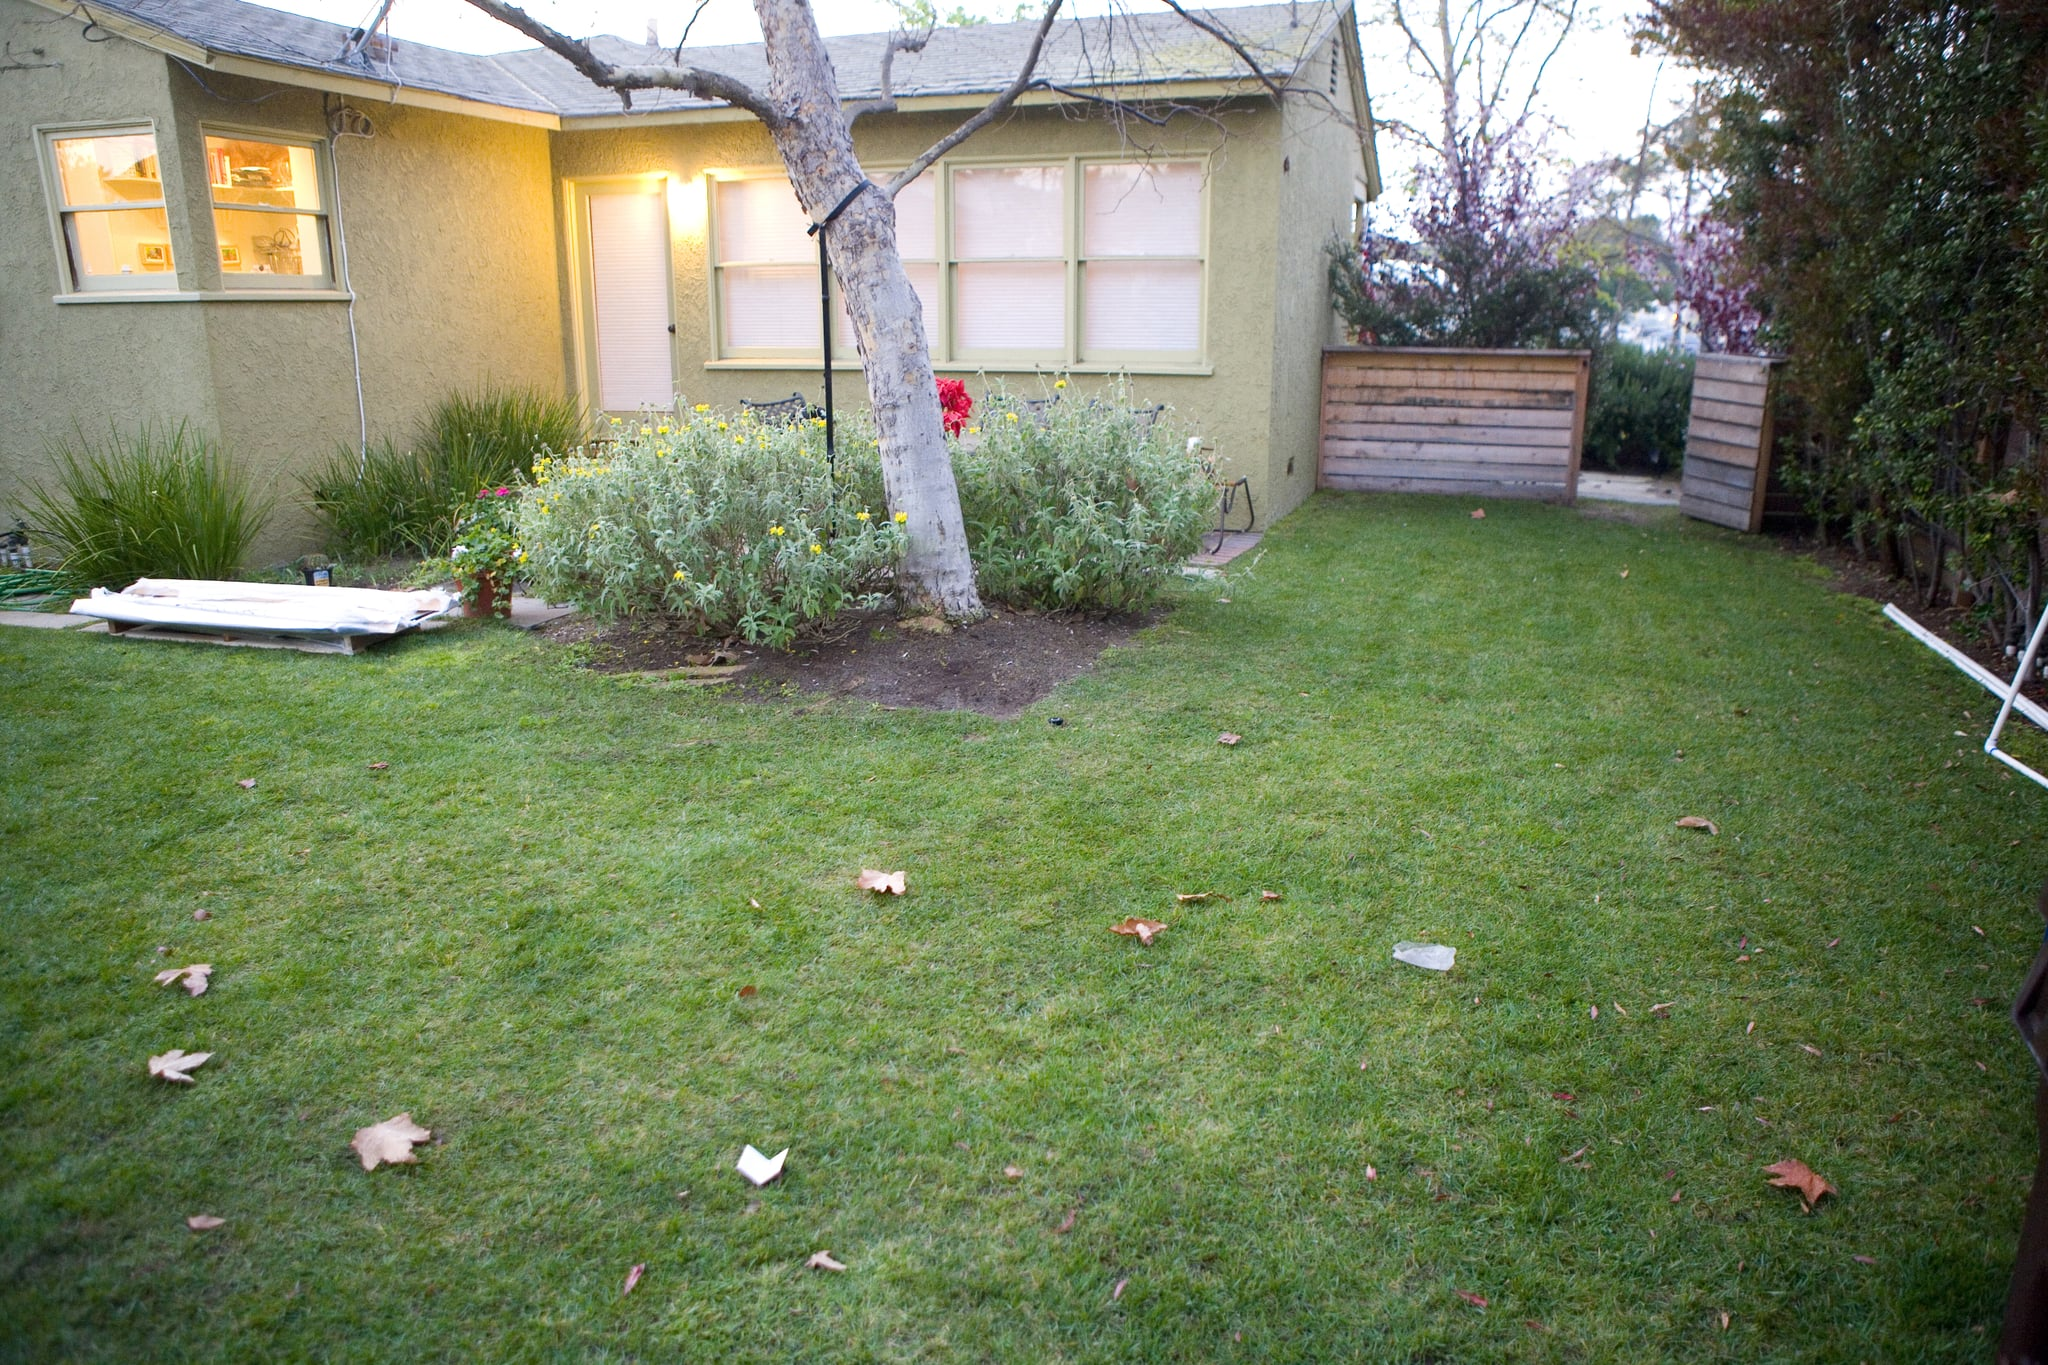 A lifeless backyard needs a push in the right direction.